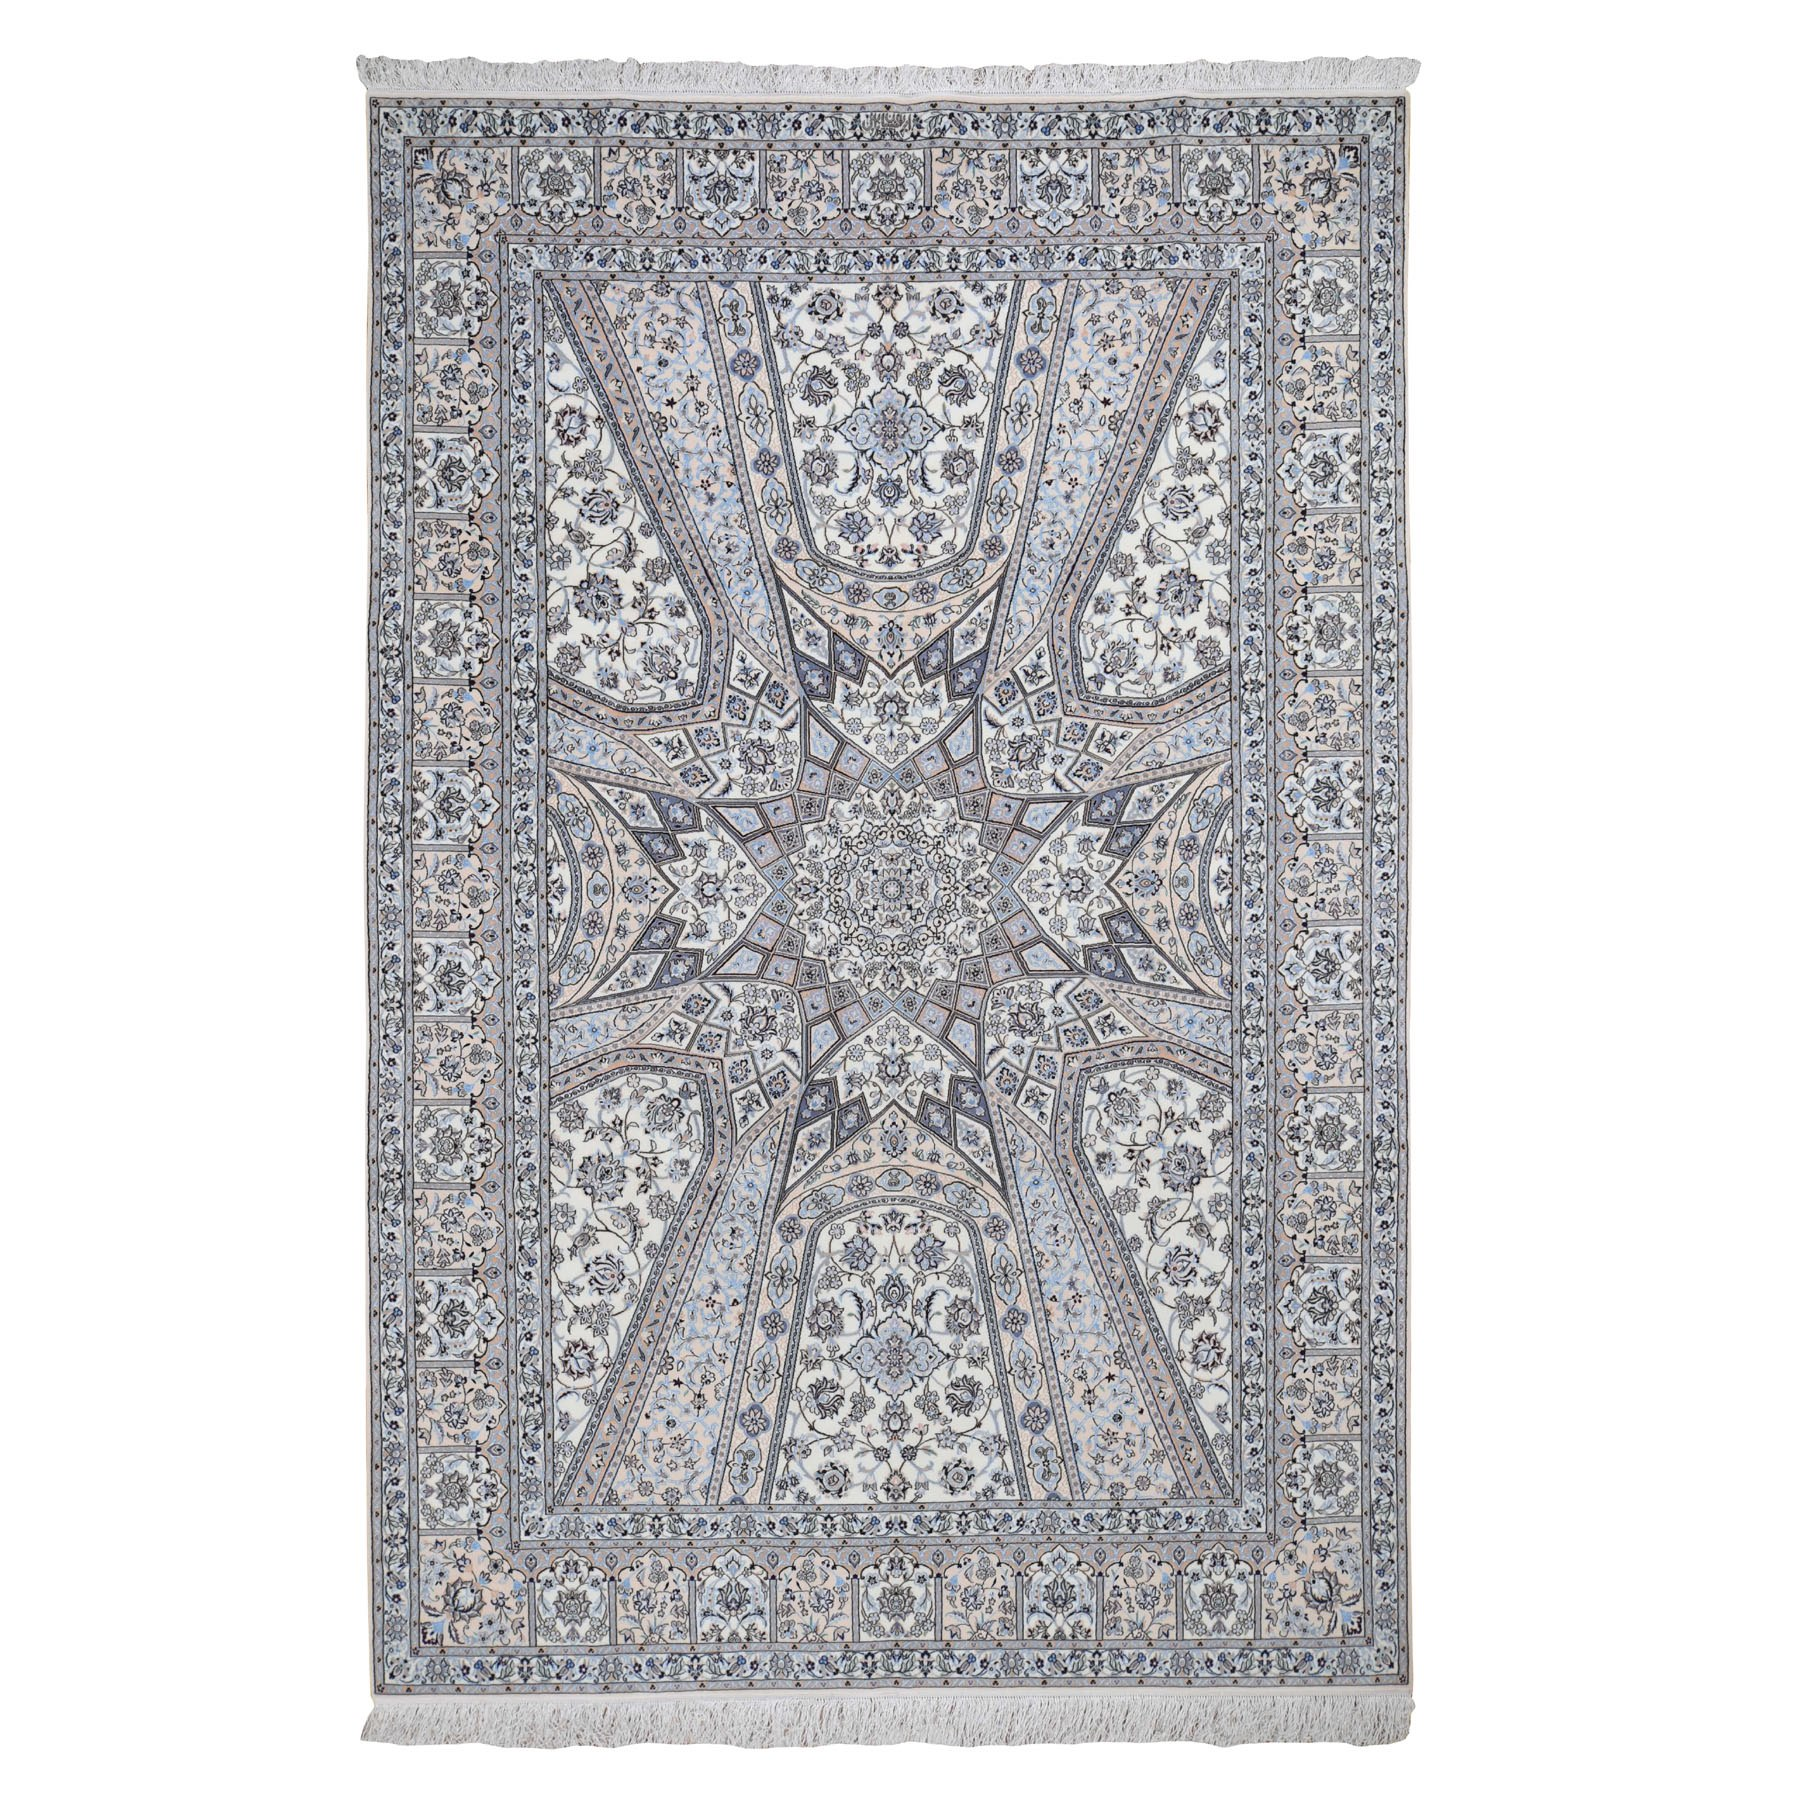 Pirniakan Collection Hand Knotted Ivory Rug No: 0196392